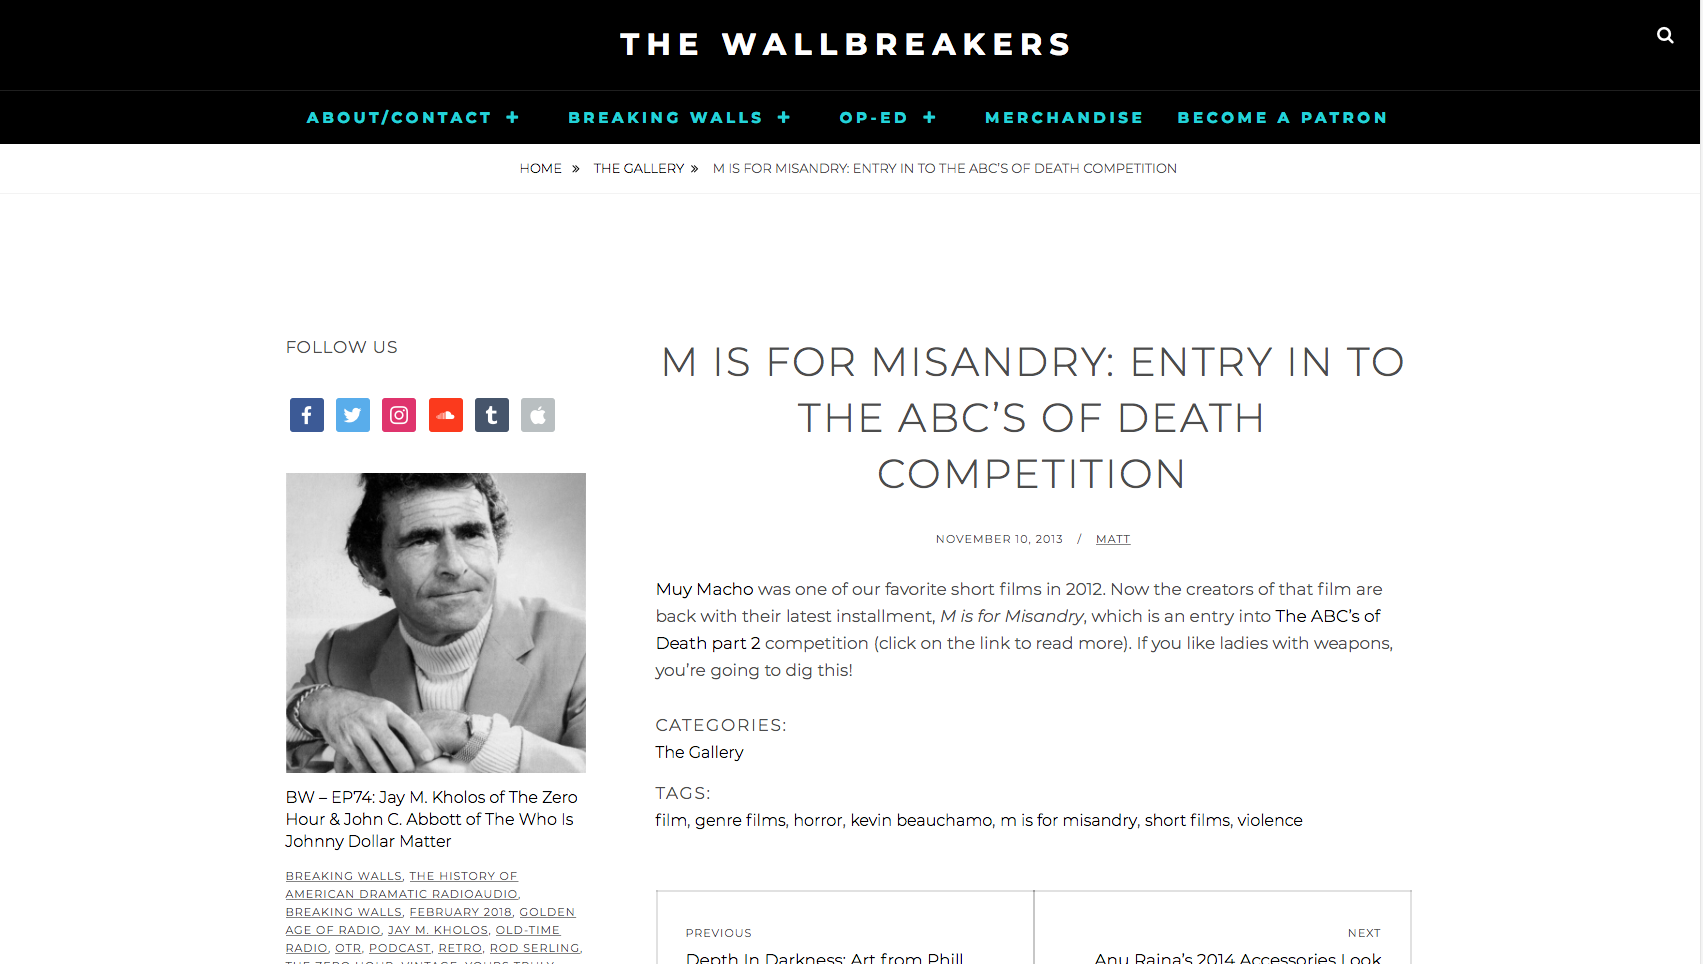 THE WALLBREAKERS.COM - M IS FOR MISANDRY